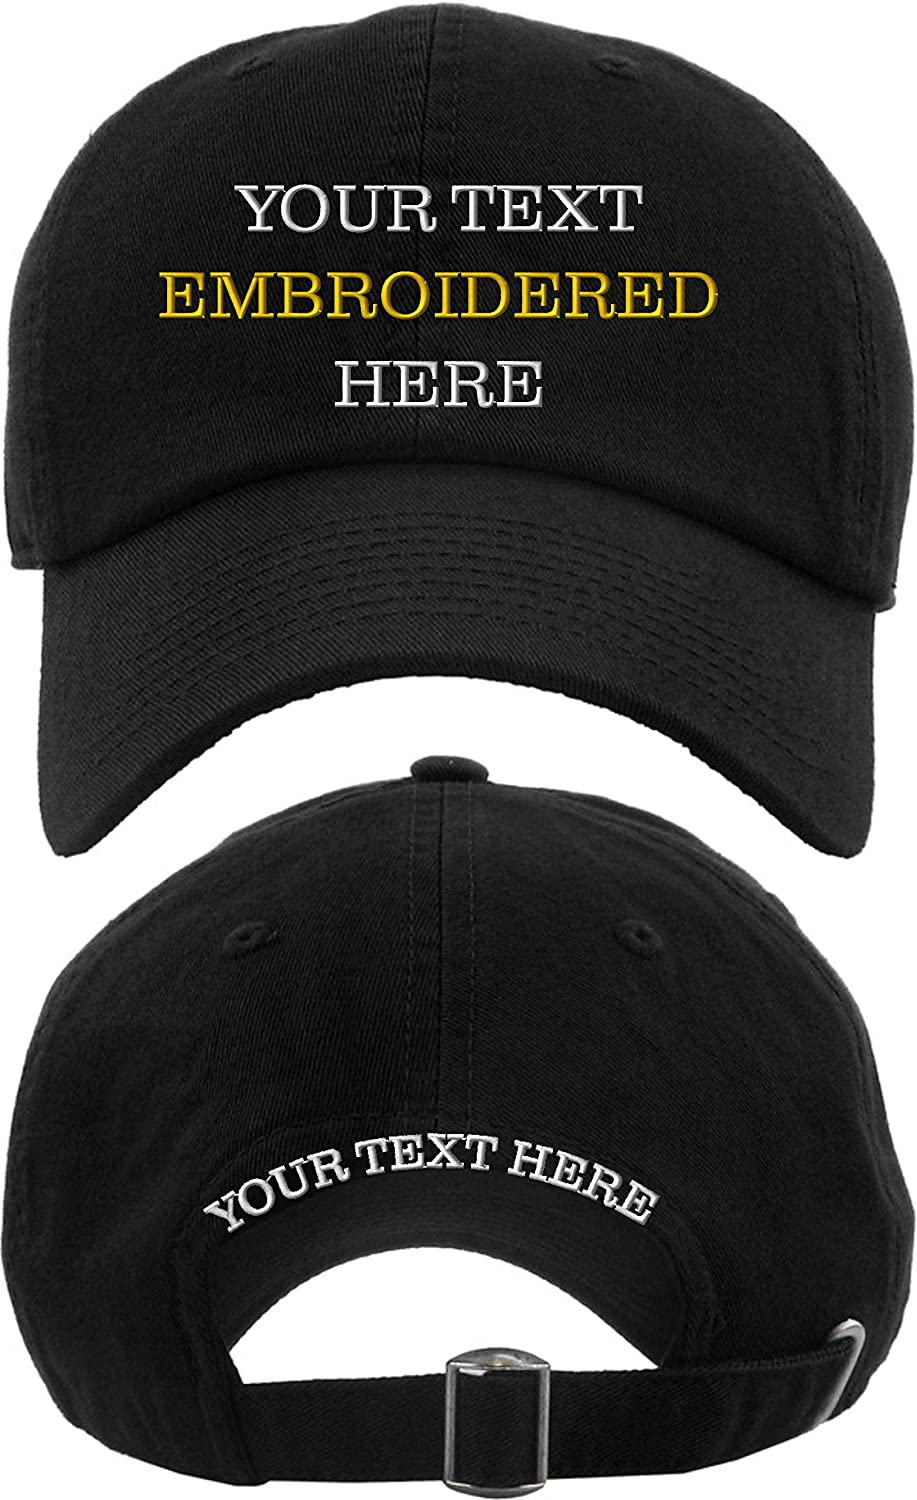 Custom Embroidery on NEW Brand new Caps Your Hats Embroidered Text Baseball